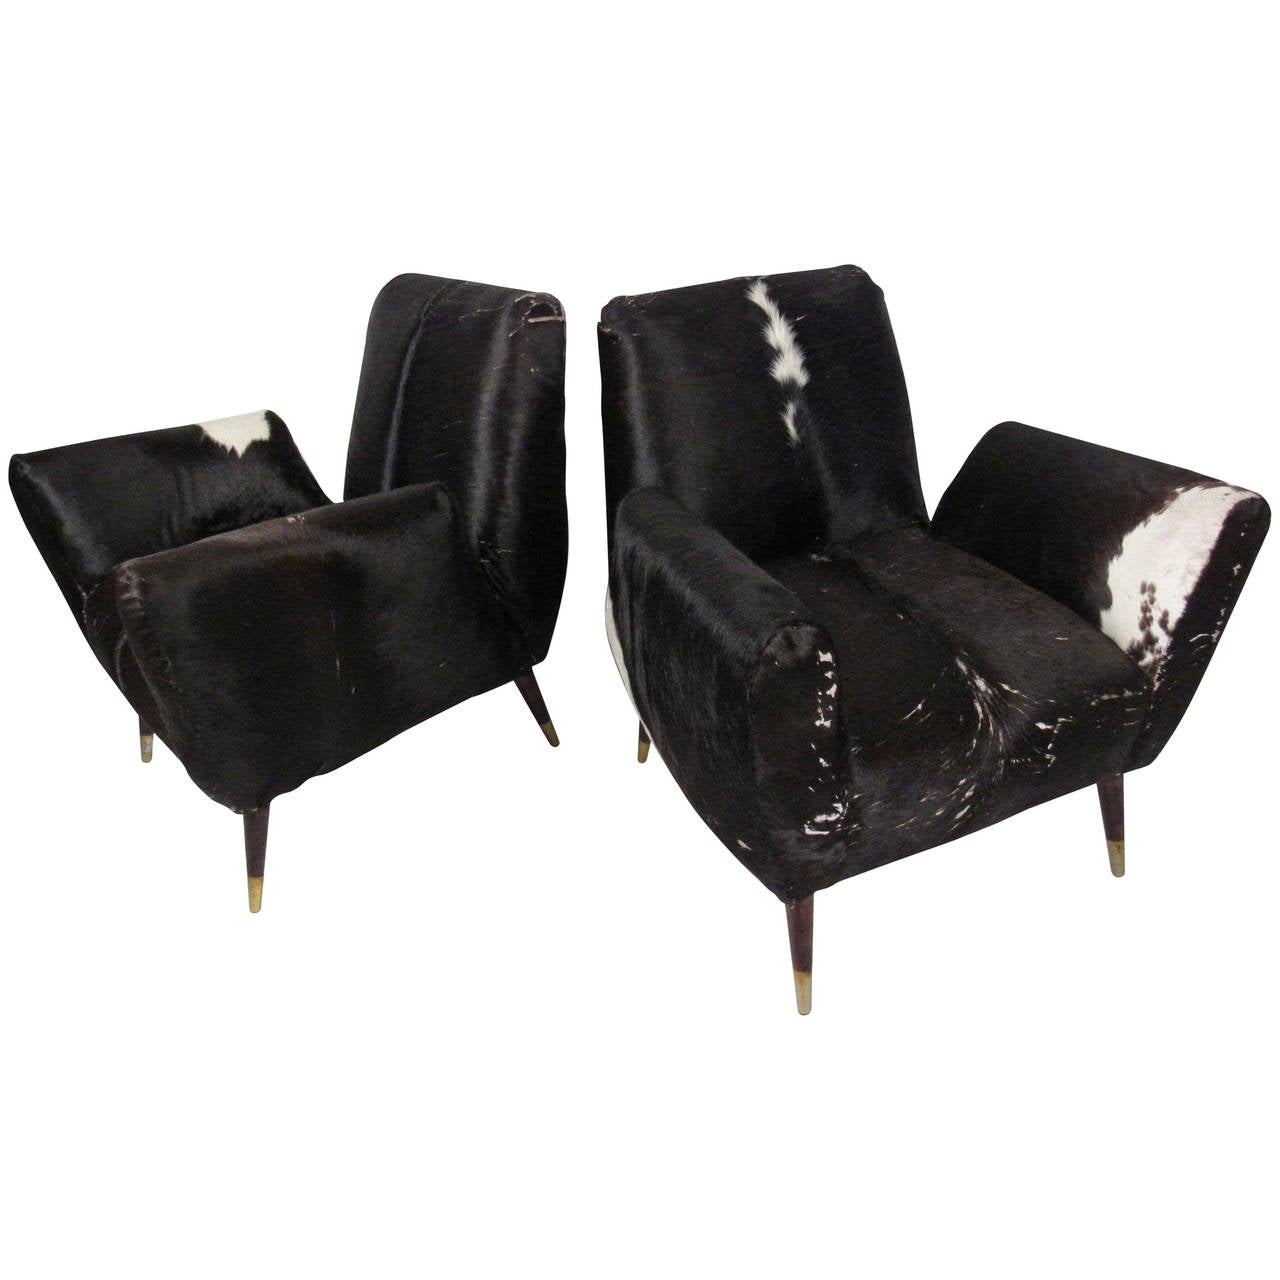 cowhide chairs modern canopy camping chair pair of mid century lounge at 1stdibs